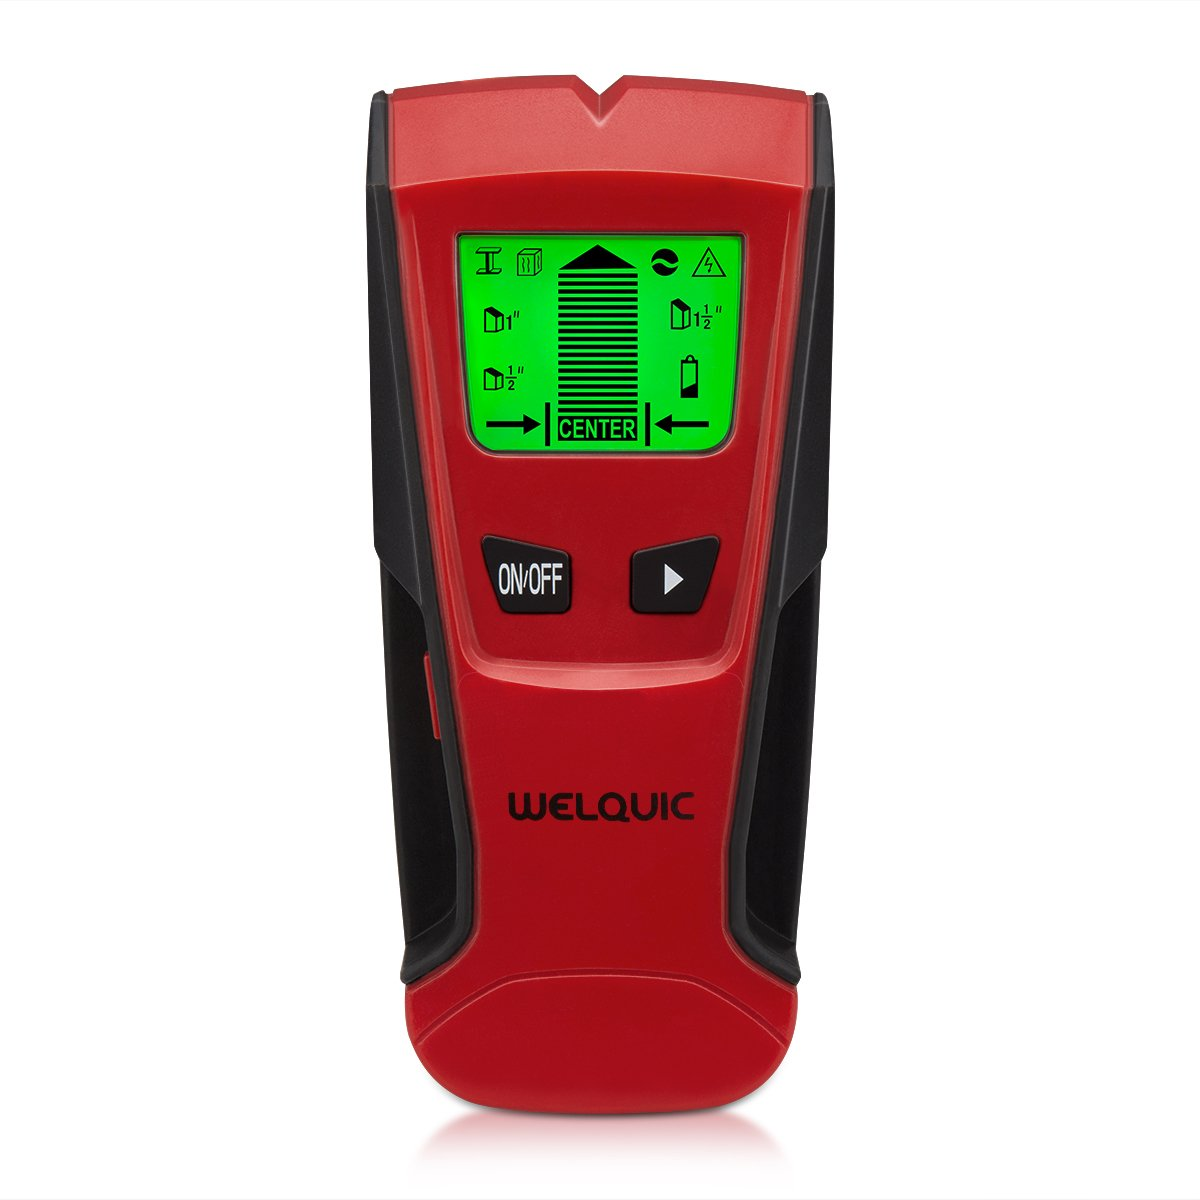 WELQUIC Stud Finder Electric Center finding with 3 in 1 Metal AC Wires Wood Detector with Backlit LCD Screen and Beeping Signal Alert Black and Red